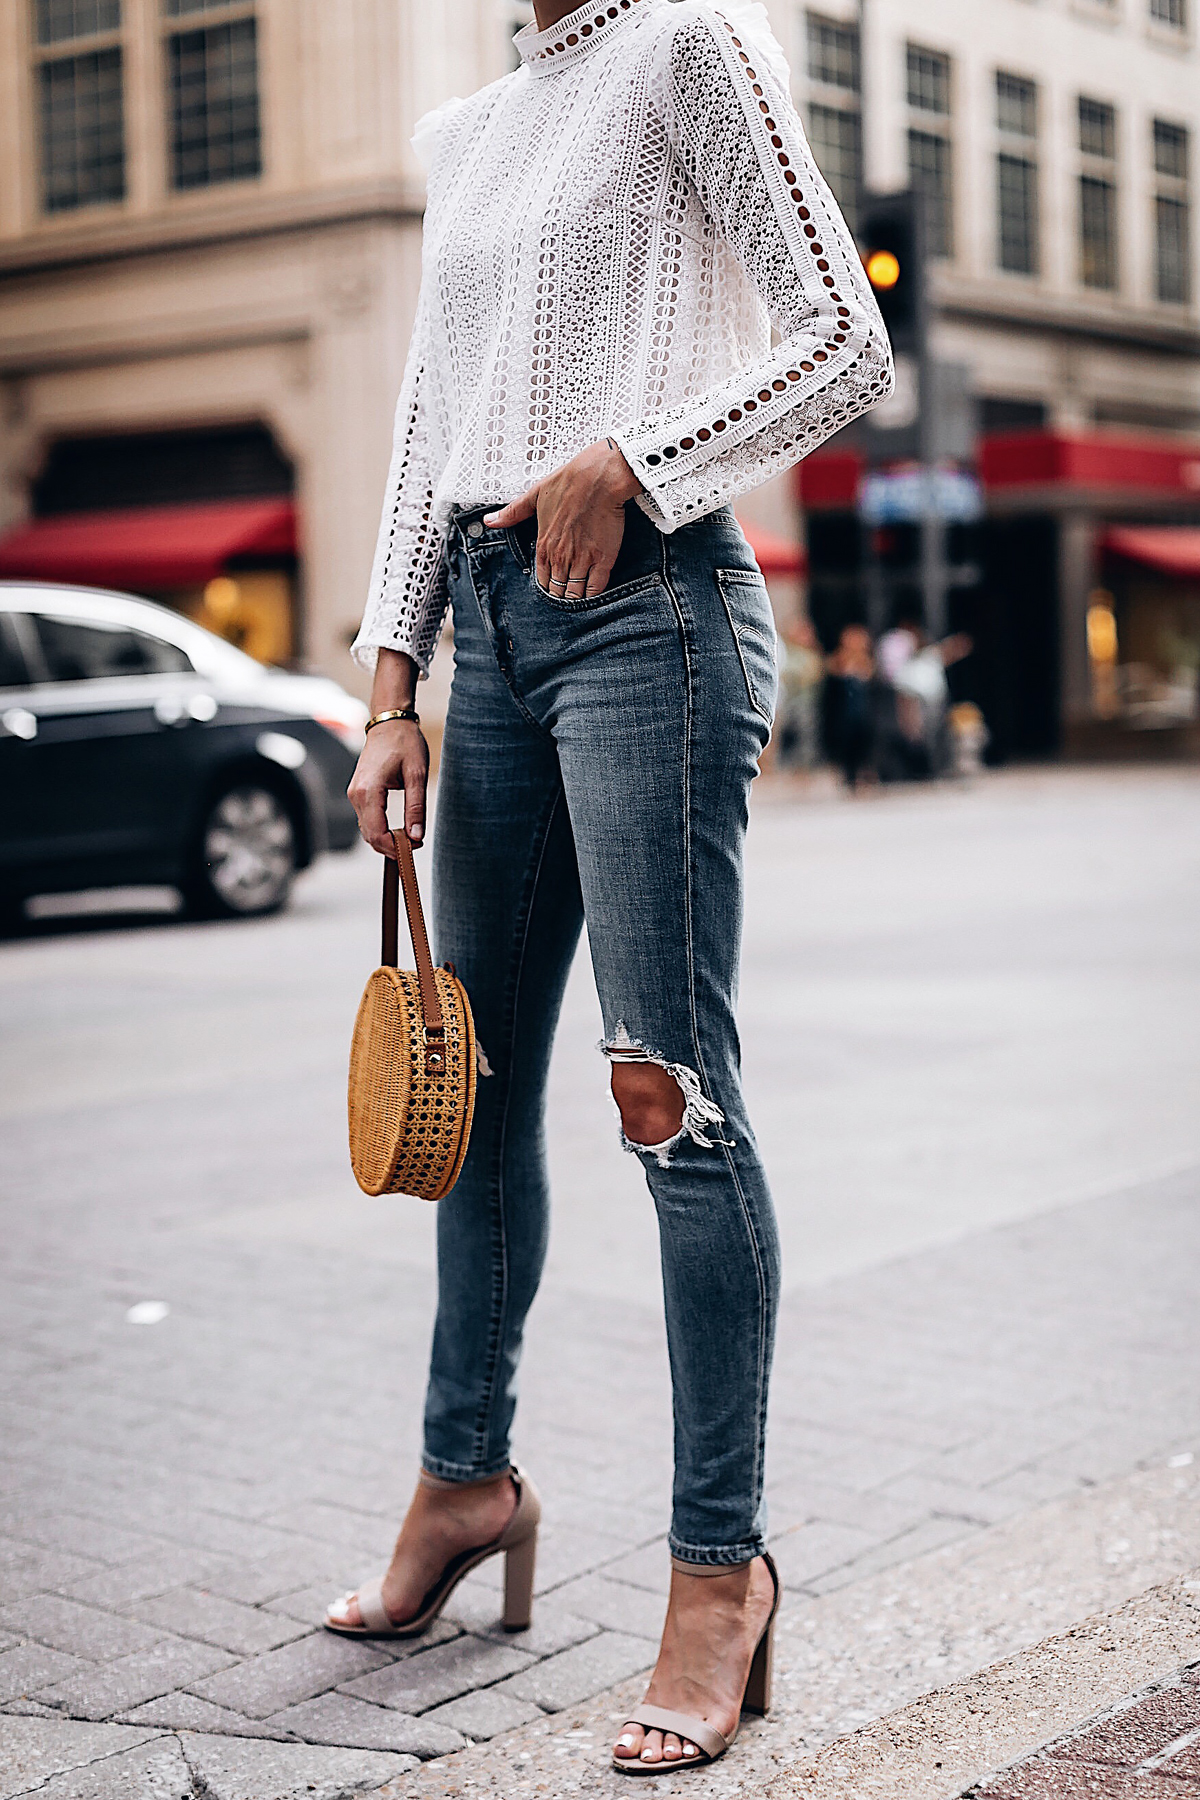 Woman Wearing Fashion Jackson Bloomingdales AQUA White Lace Ruffle Top Levis 721 Skinny Jeans Tan Ankle Strap Heeled Sandals Serpui Straw Circle Handbag Fashion Jackson San Diego Fashion Blogger Street Style